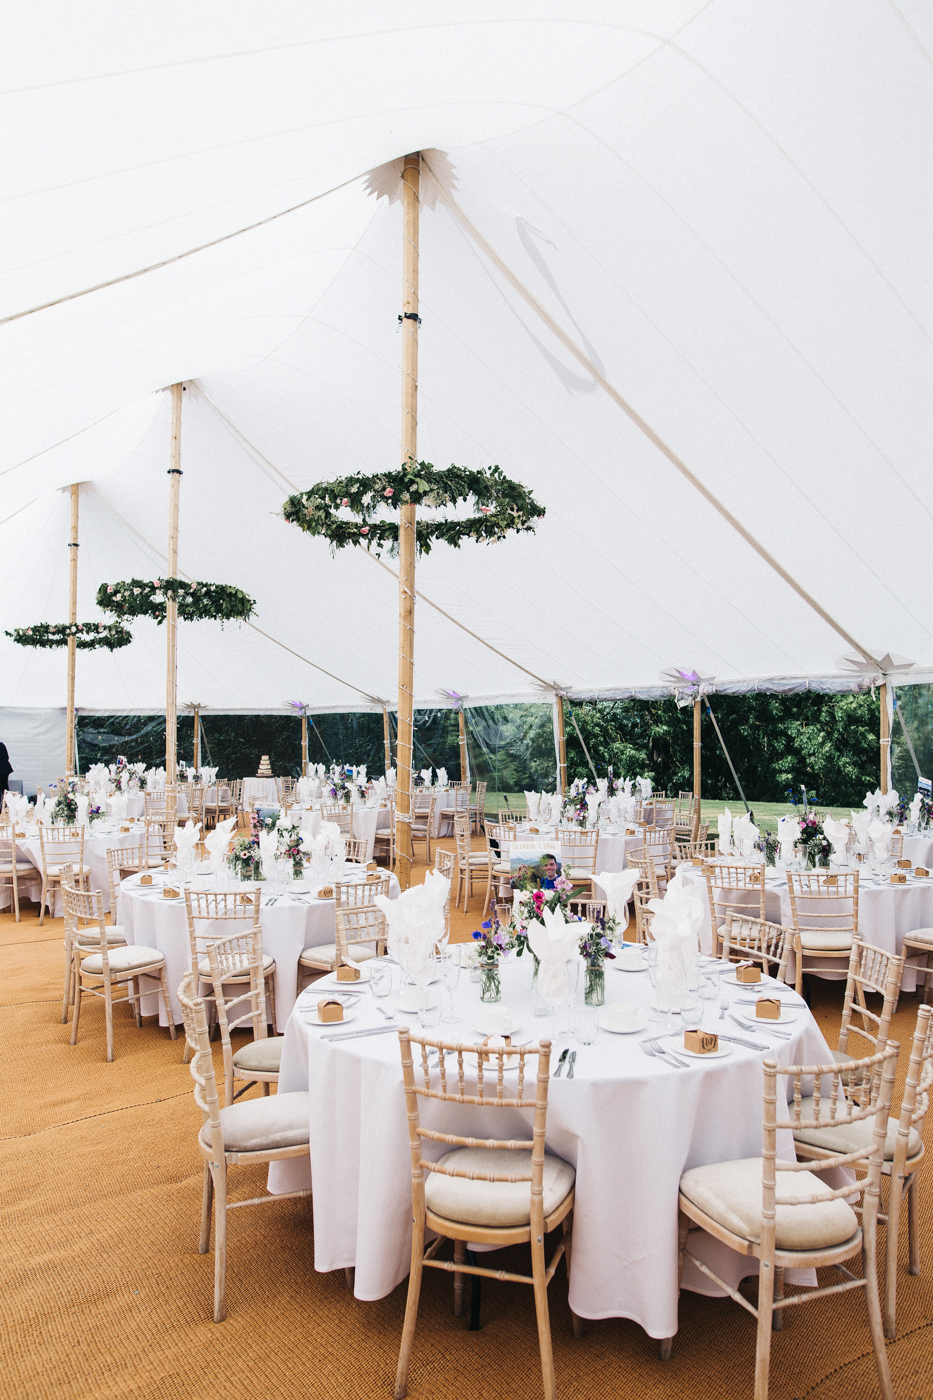 interior of the marquee set up for the wedding. aldby park wedding york north yorkshire teesside photography stop motion wedding films uk.